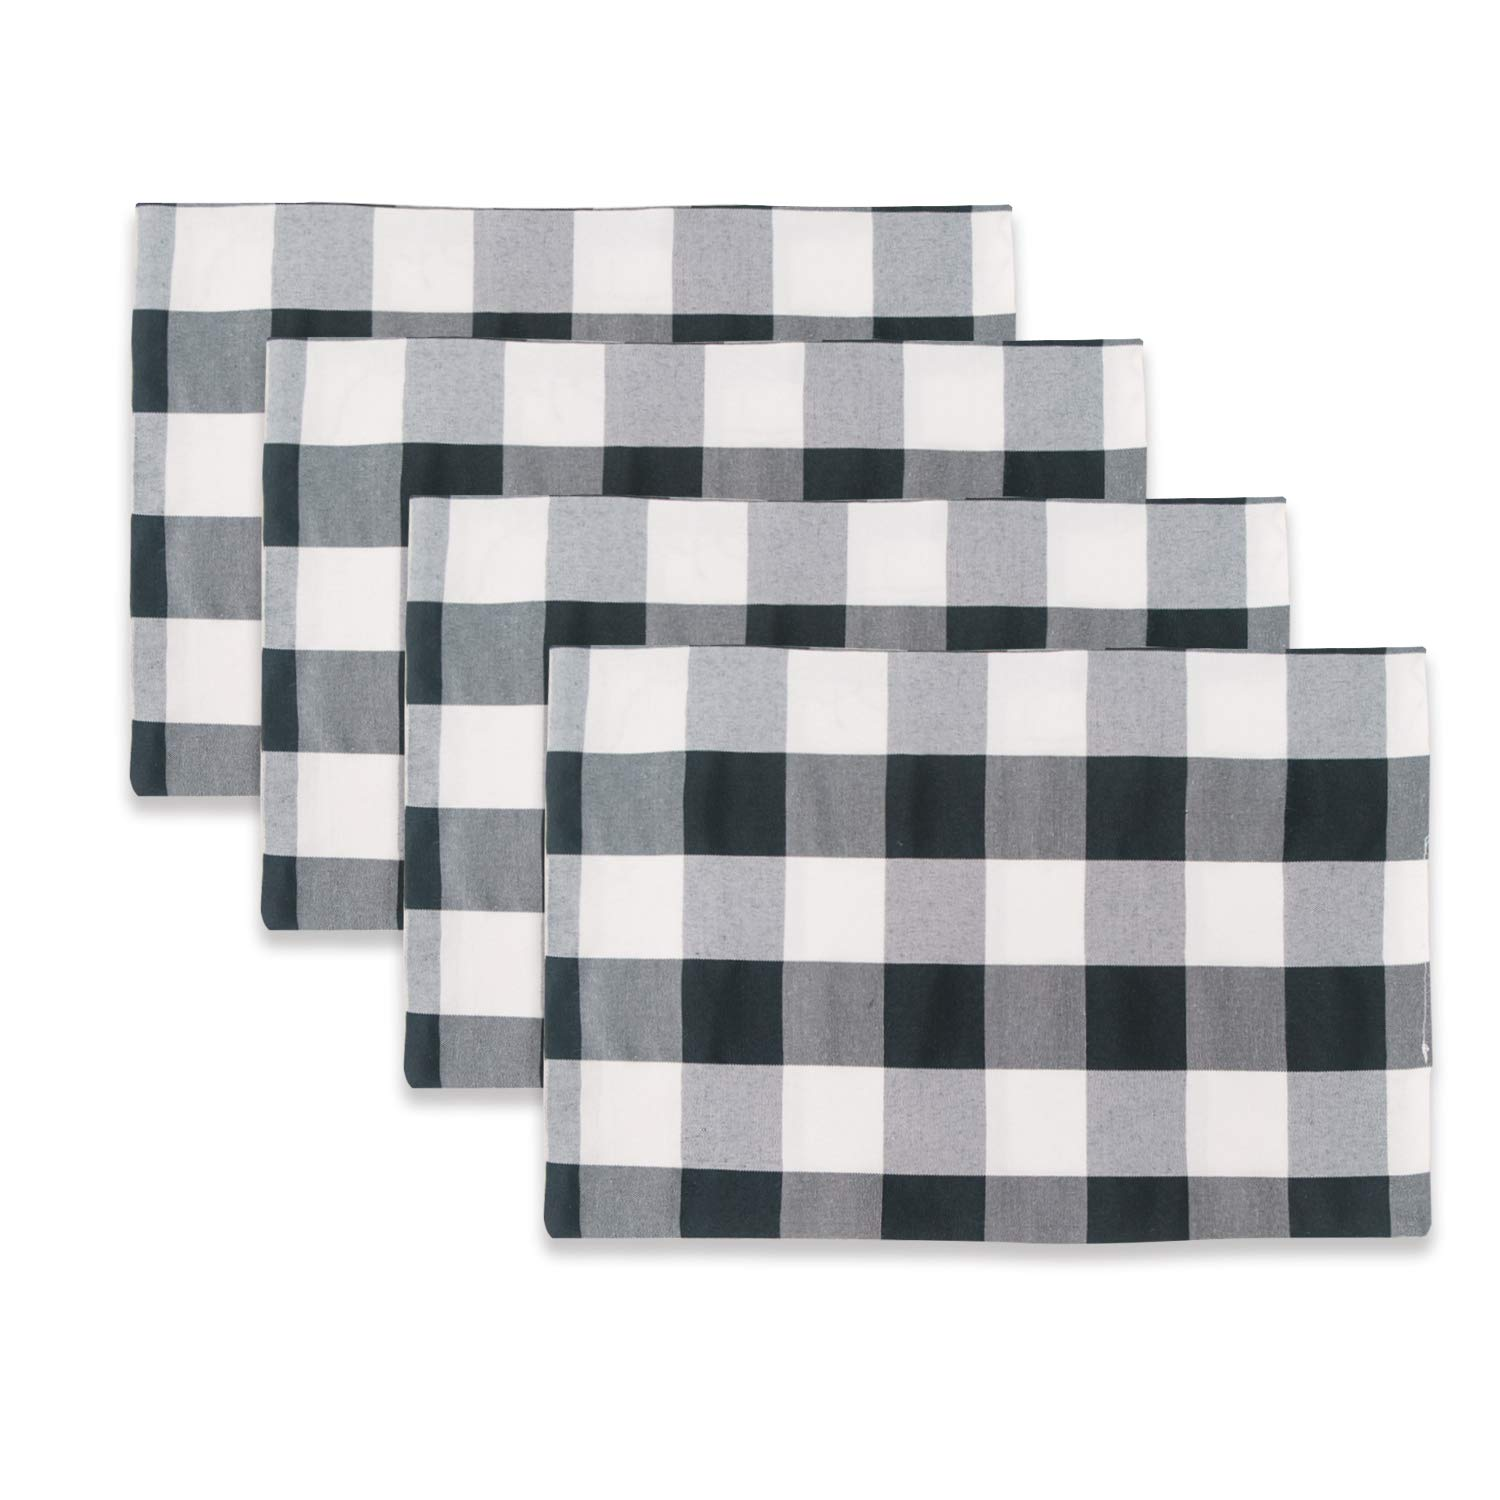 NATUS WEAVER Black & White 2 Side Buffalo Check Placemats Set of 4 Heat Resistant Dining Table Place Mats for Kitchen Table, 12 x 18 inches